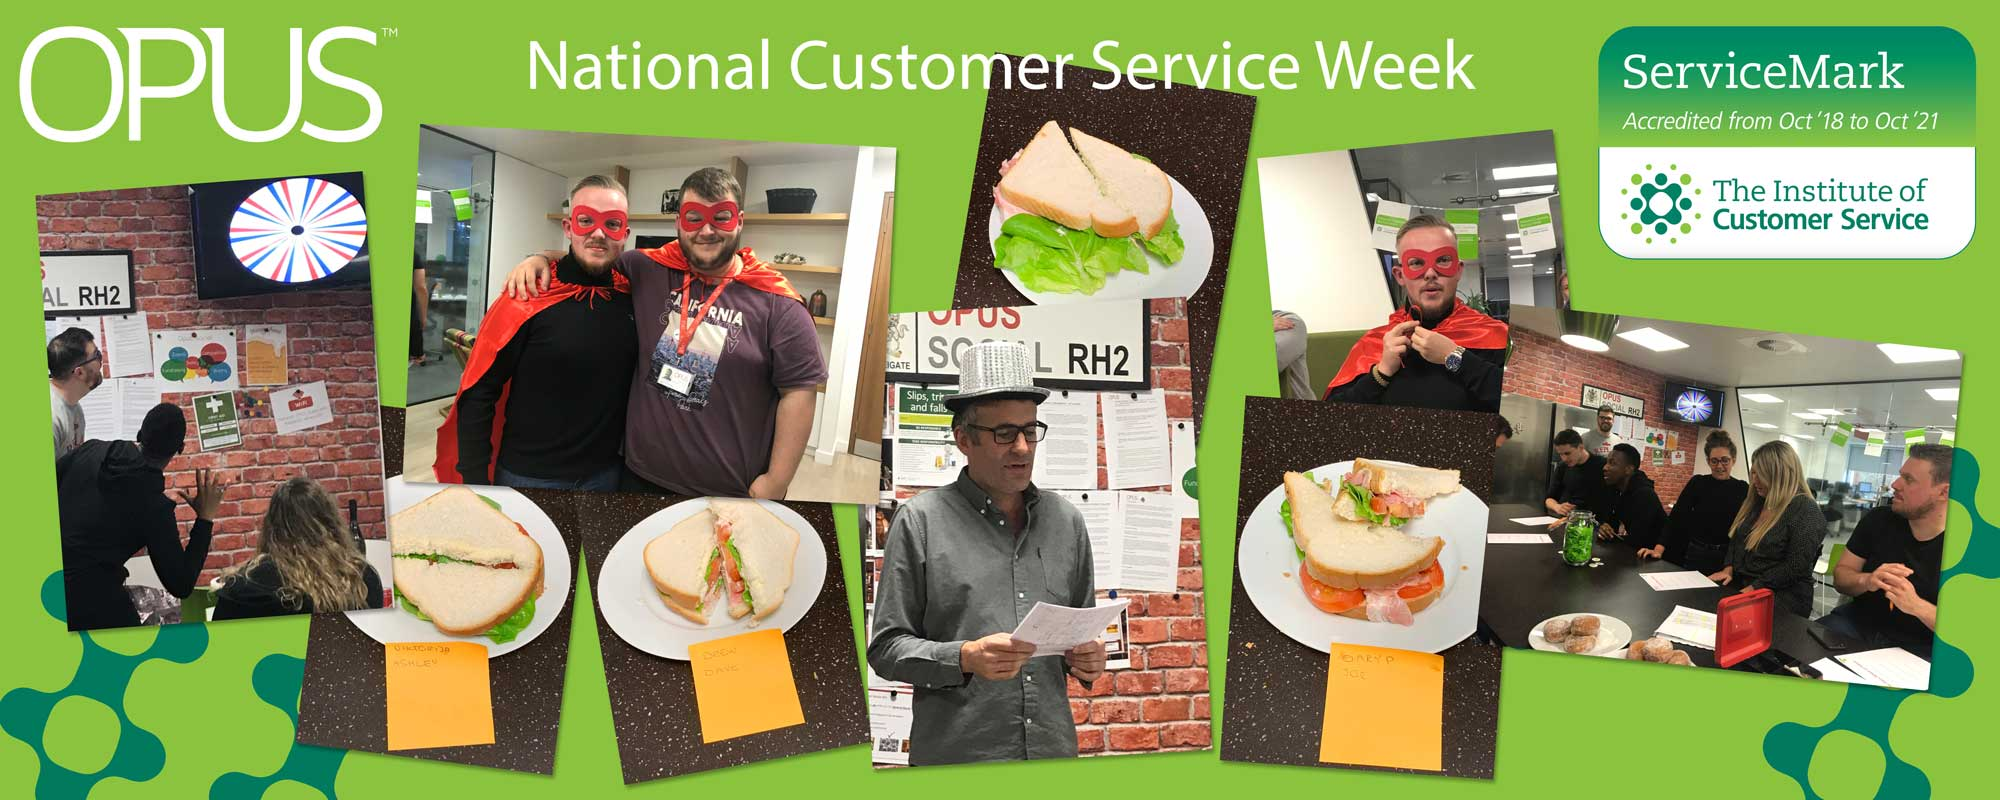 National Customer Service Week 2019